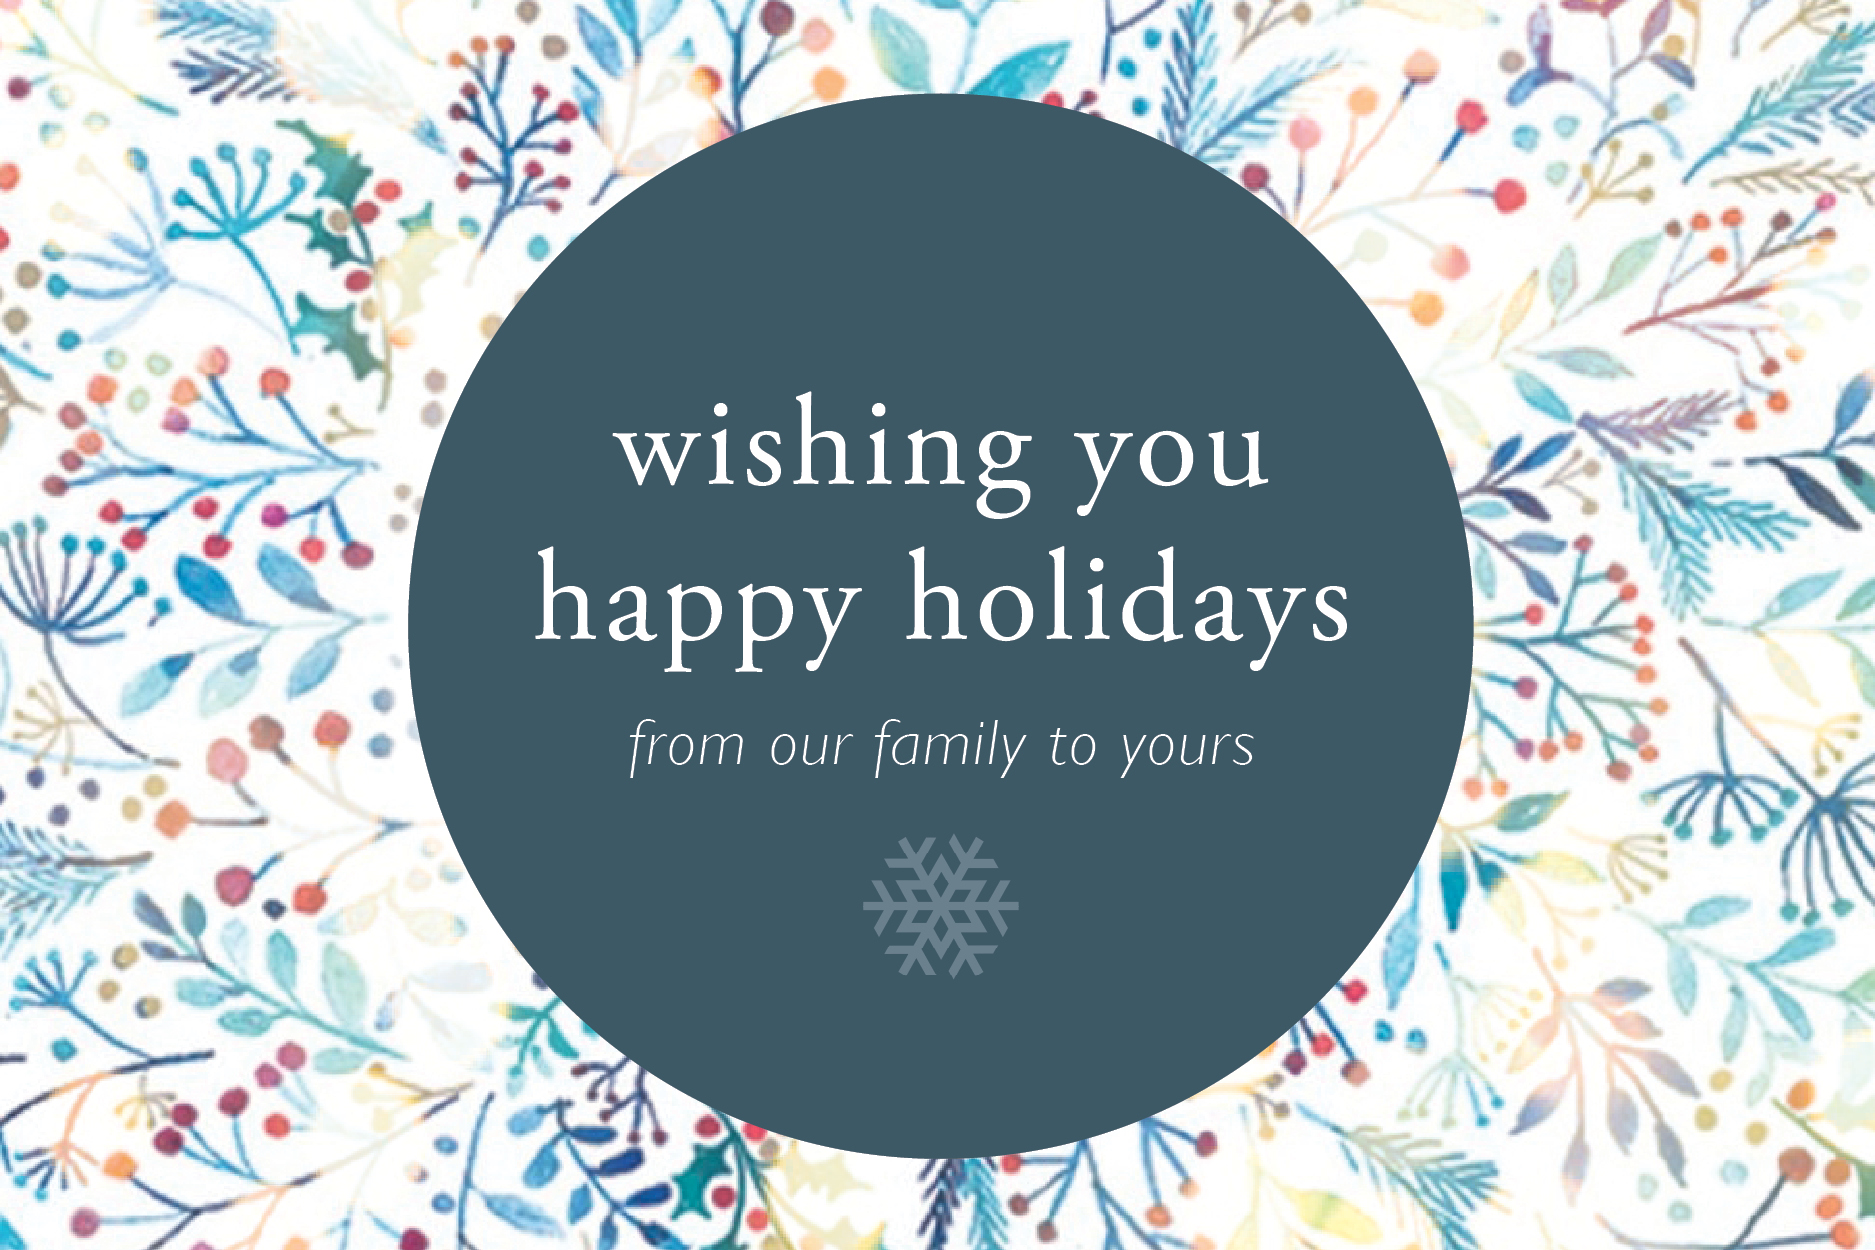 Holiday Wishes From Our Family to Yours